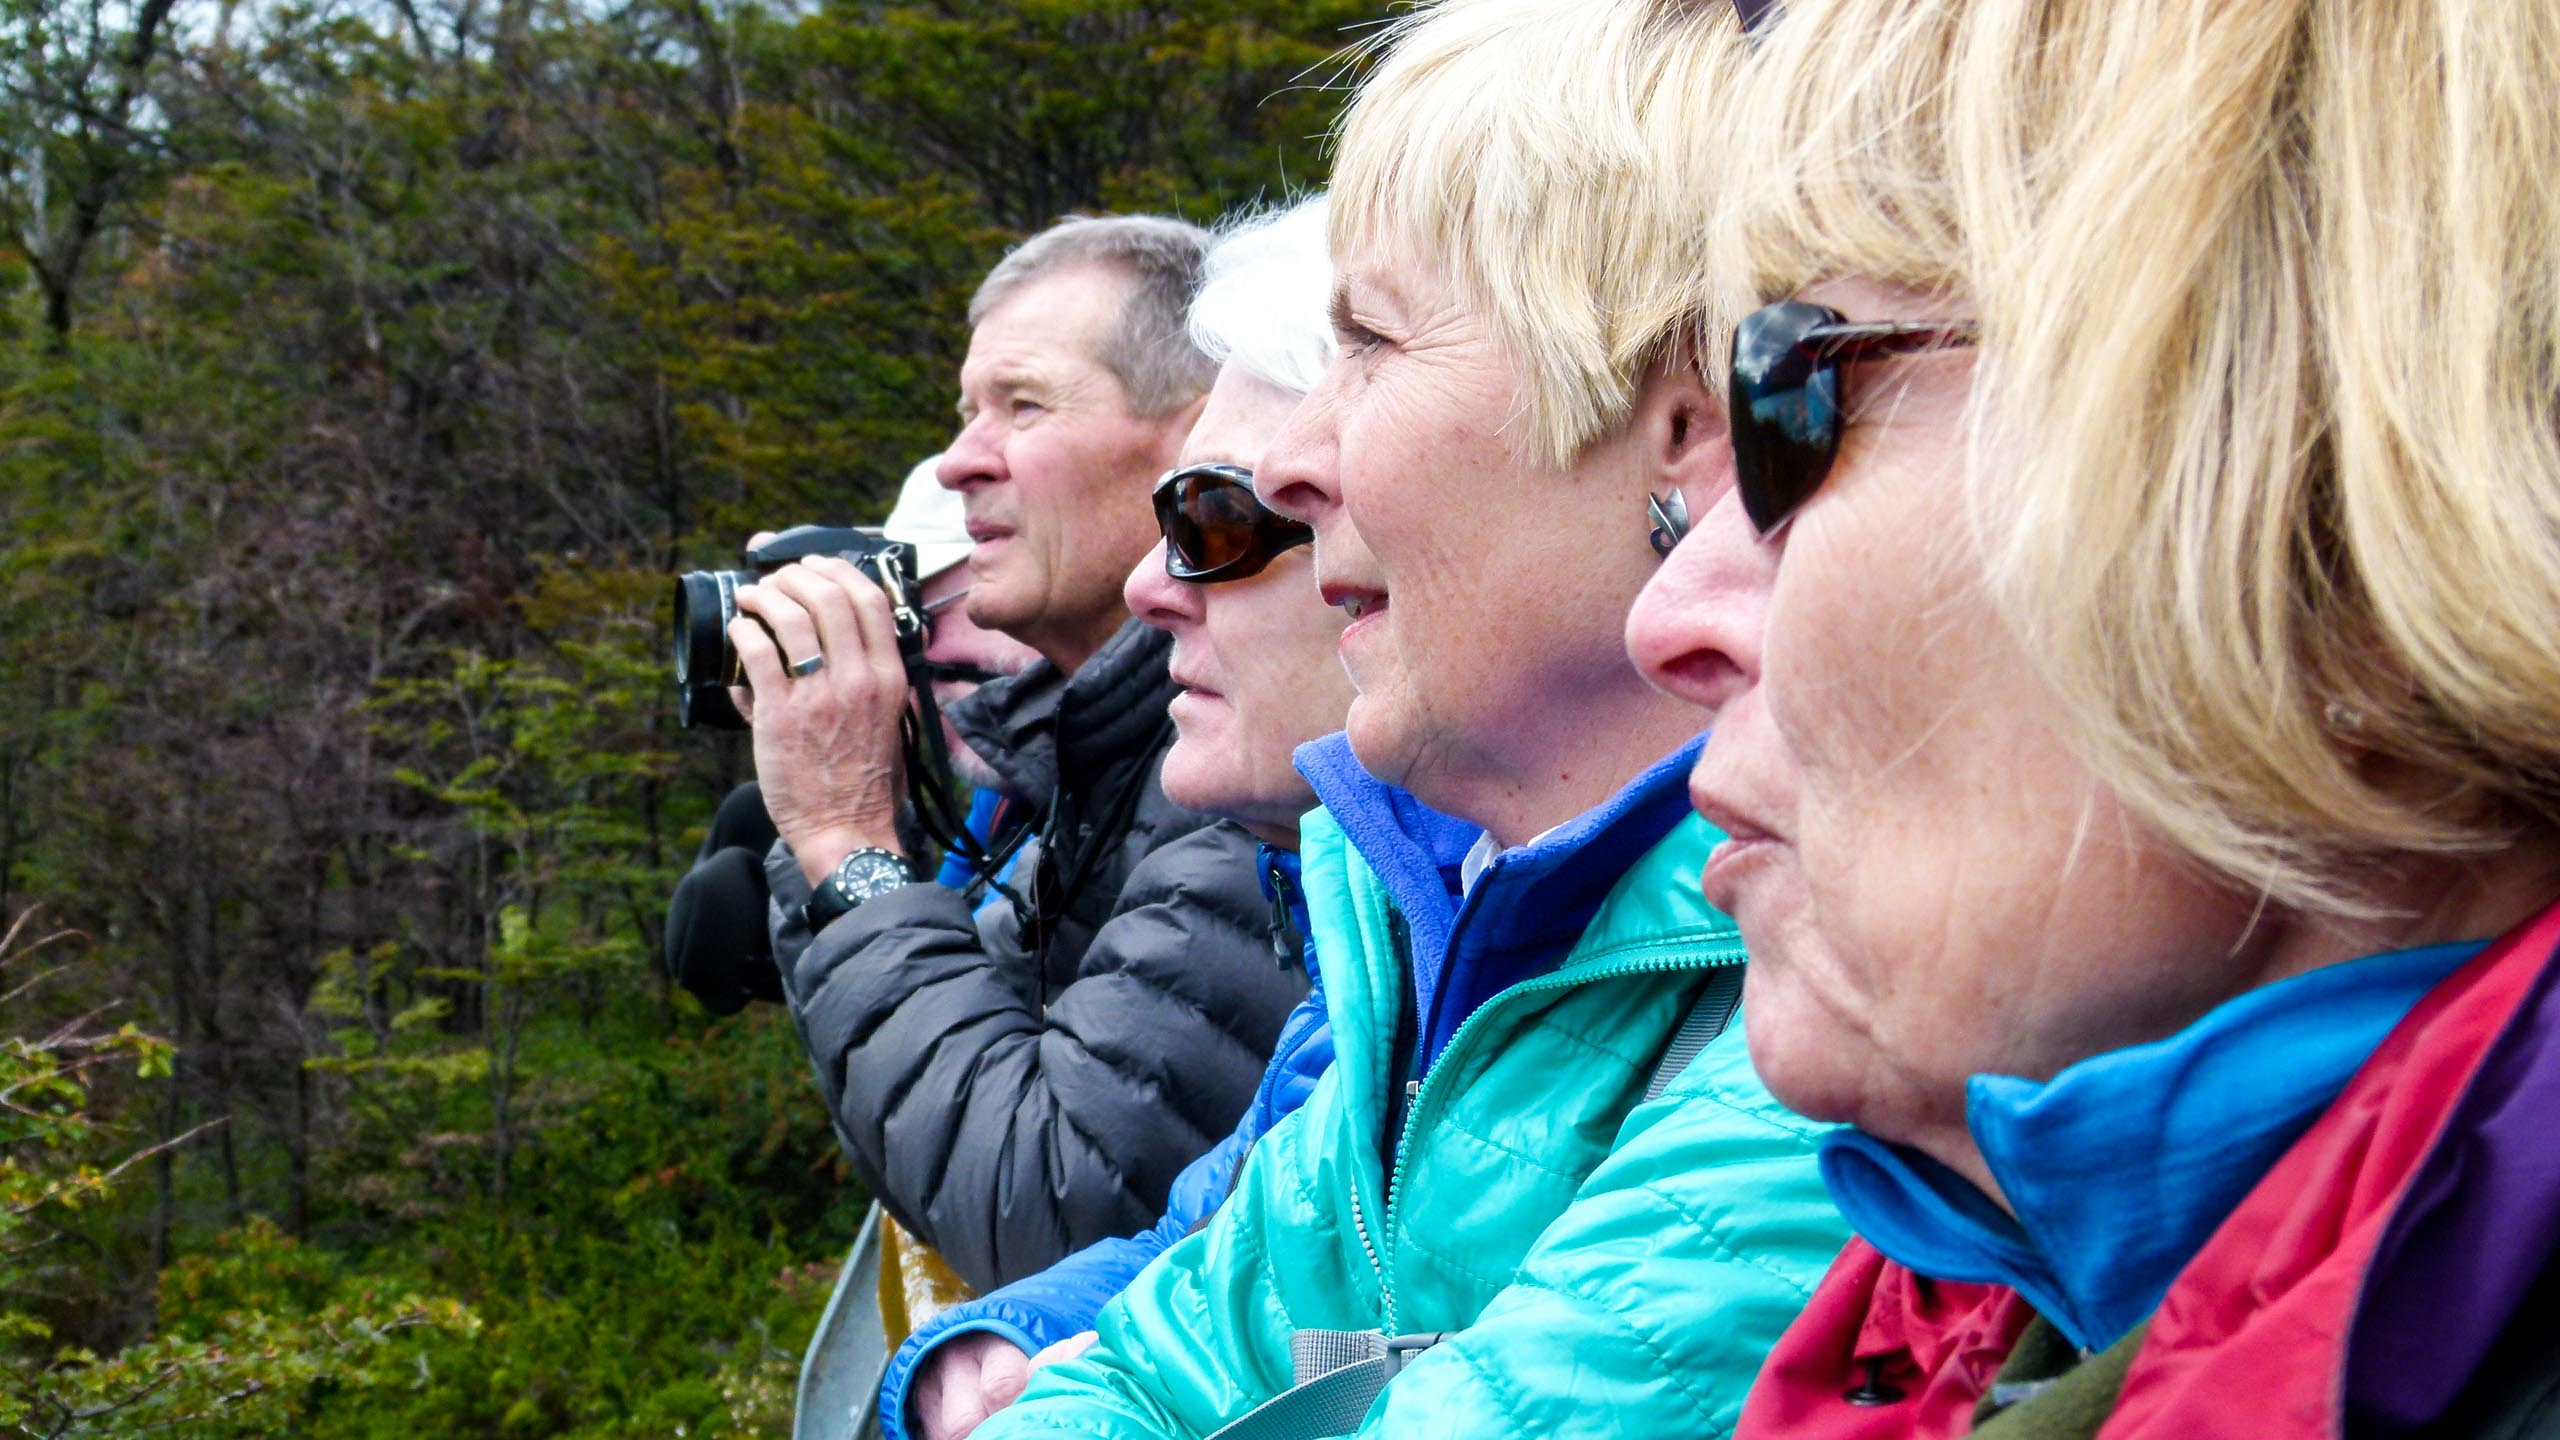 Hiking group looks out at Argentina nature